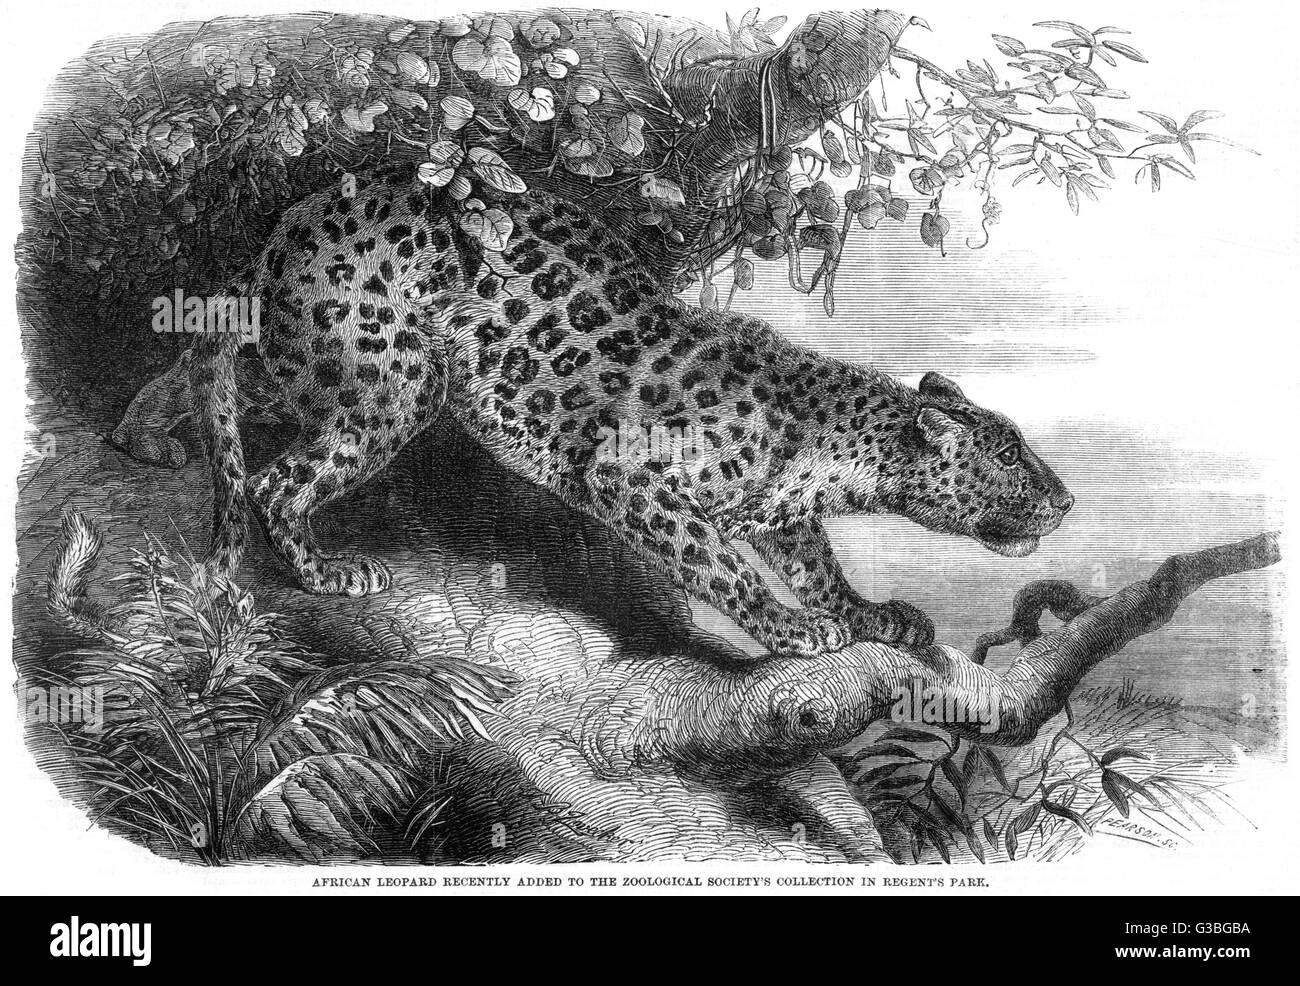 An African leopard recently  added to the Zoological  Society's collection in  Regent's Park.           - Stock Image